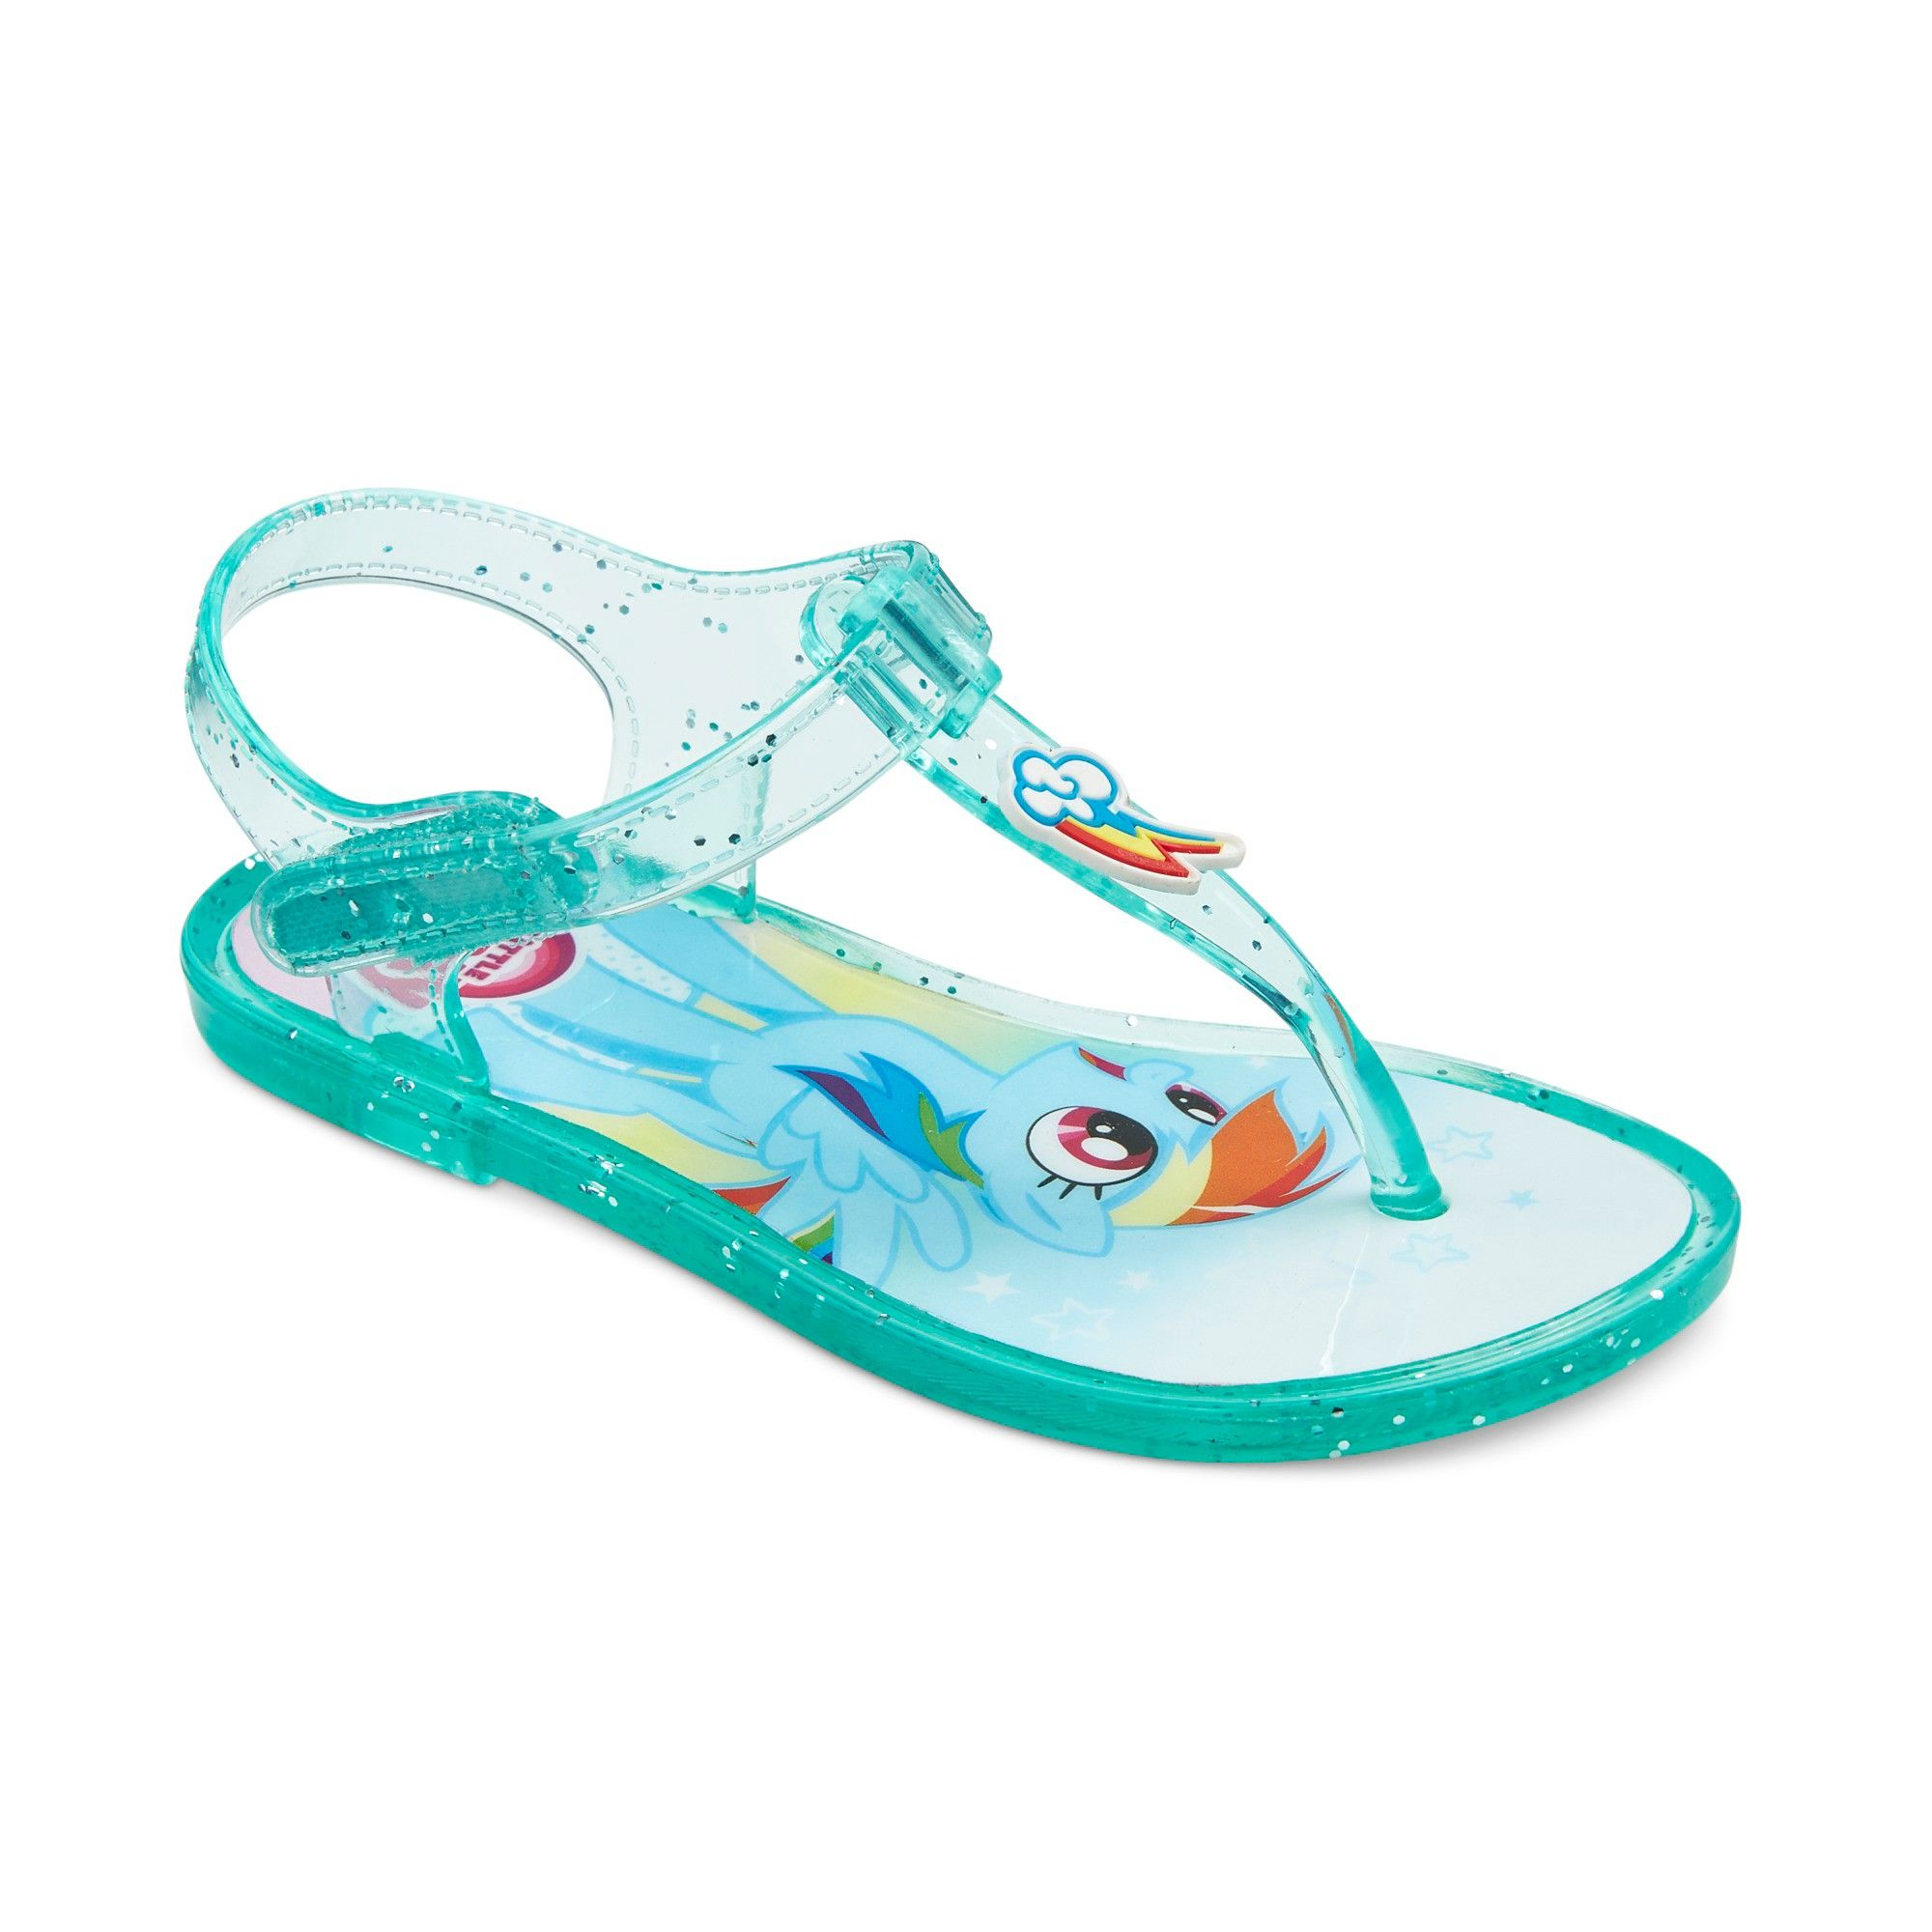 92f5787301ce My Little Pony Toddler Girls  Rainbow Dash Jelly Sandals - Turquoise ...